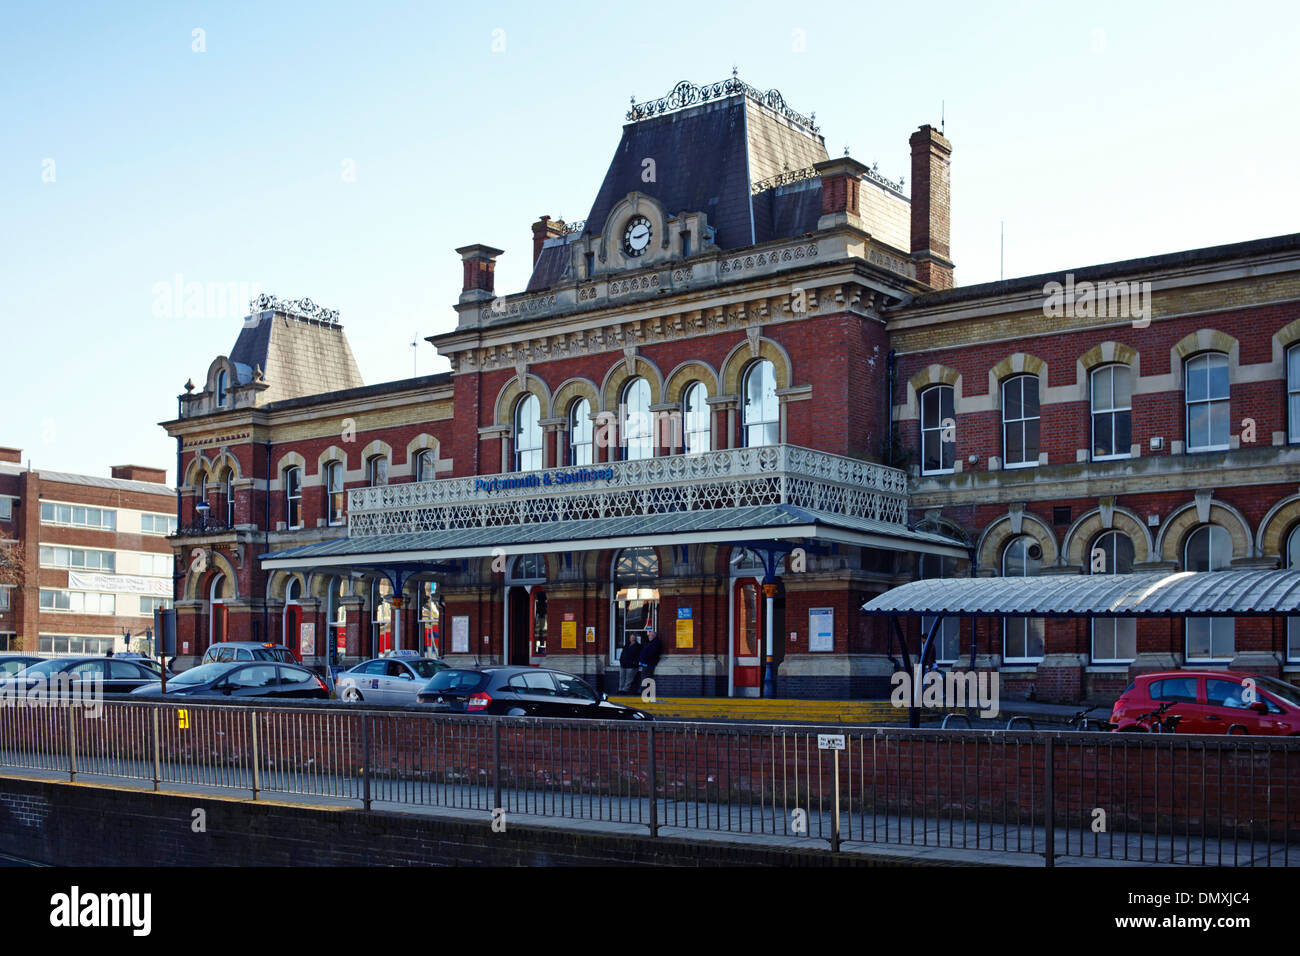 Portsmouth and Southsea railway station building - Stock Image